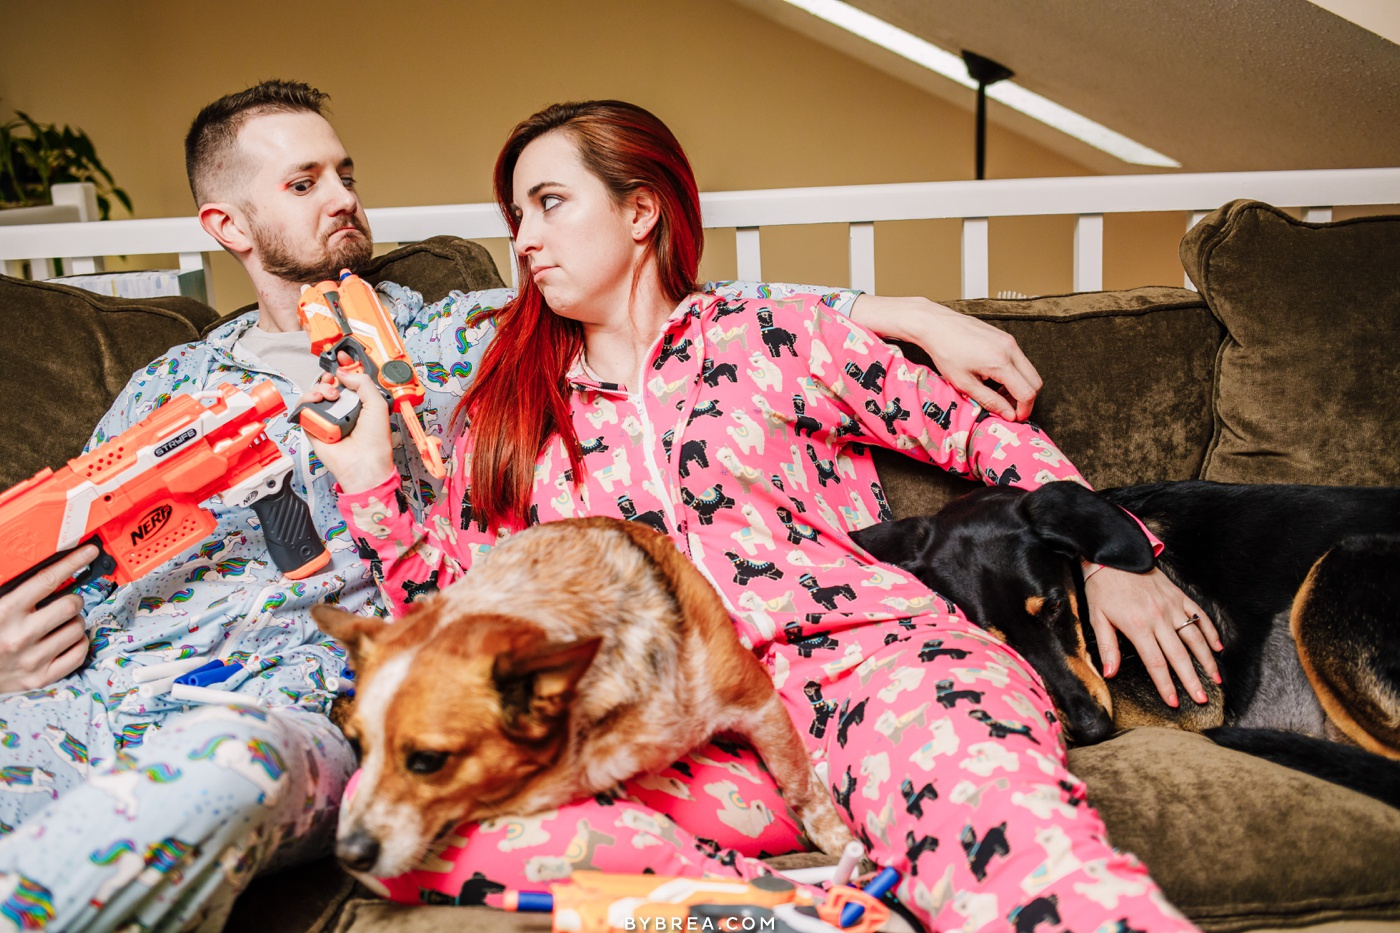 Lifestyle engagement photo of couple playing with nerf guns while wearing meundies onesies and puppies snuggling